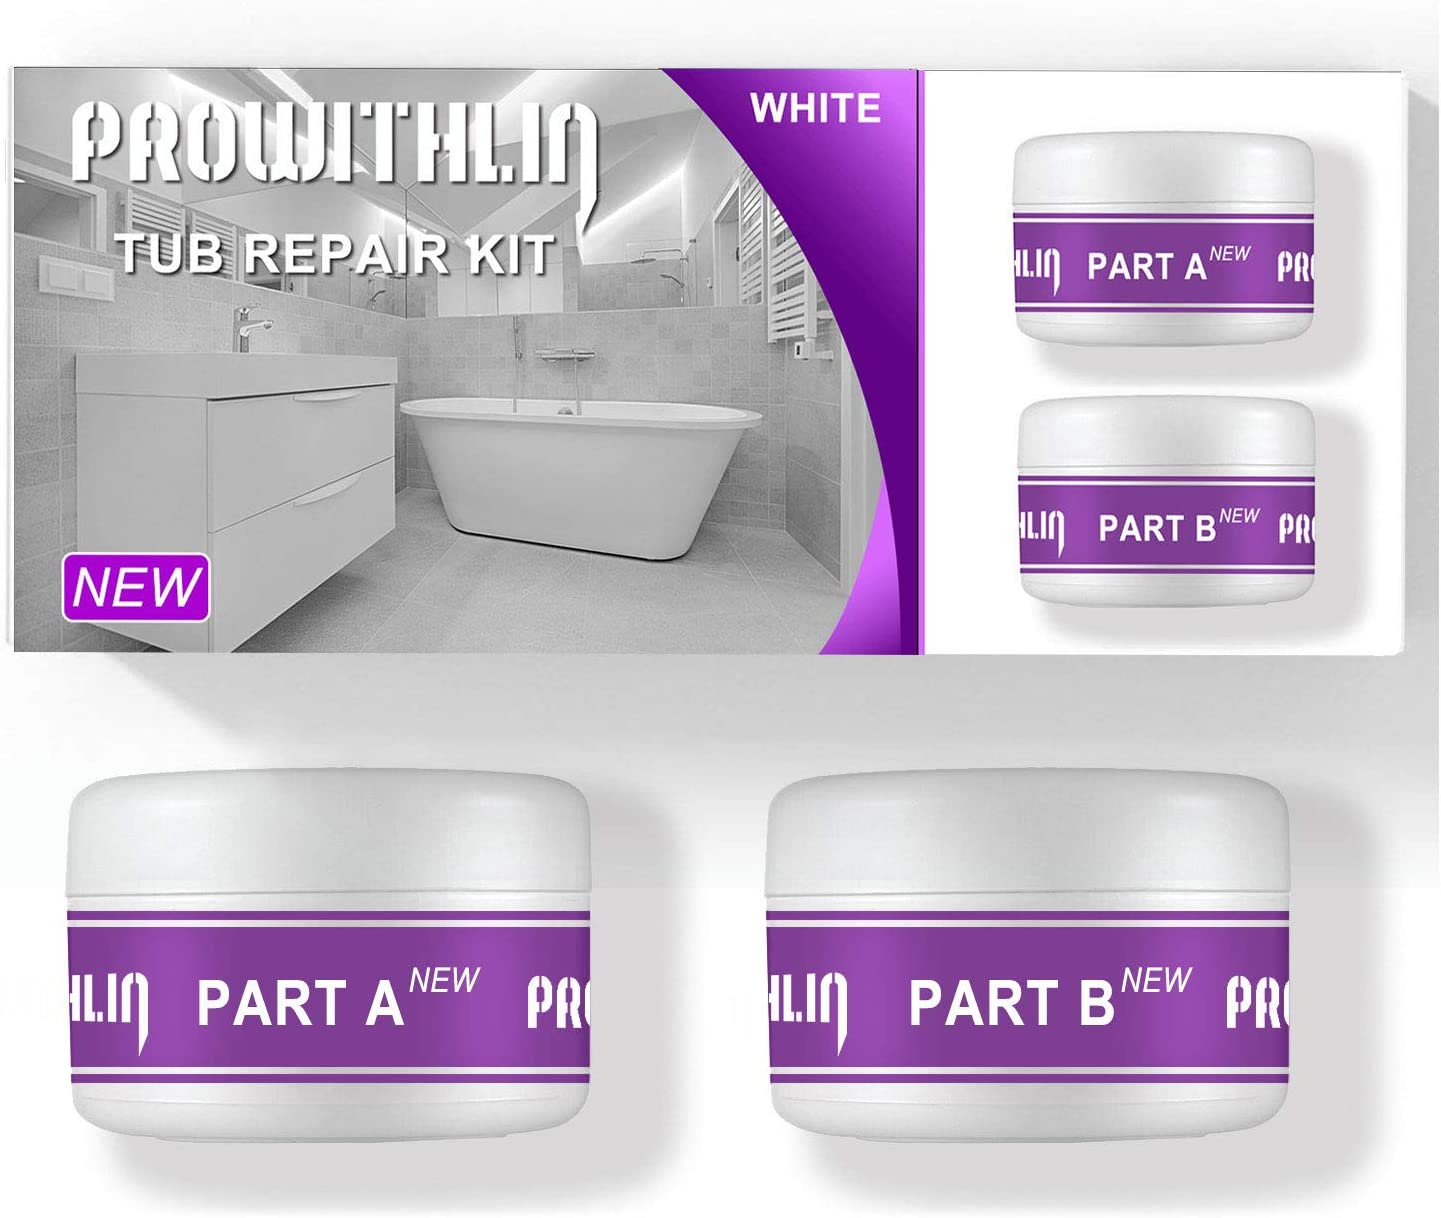 Tub, Tile, Porcelain and Shower Repair Kit Fiberglass Repair Kit Tub and  Tile Refinishing Kit - White (7.7oz) NEW VERSION